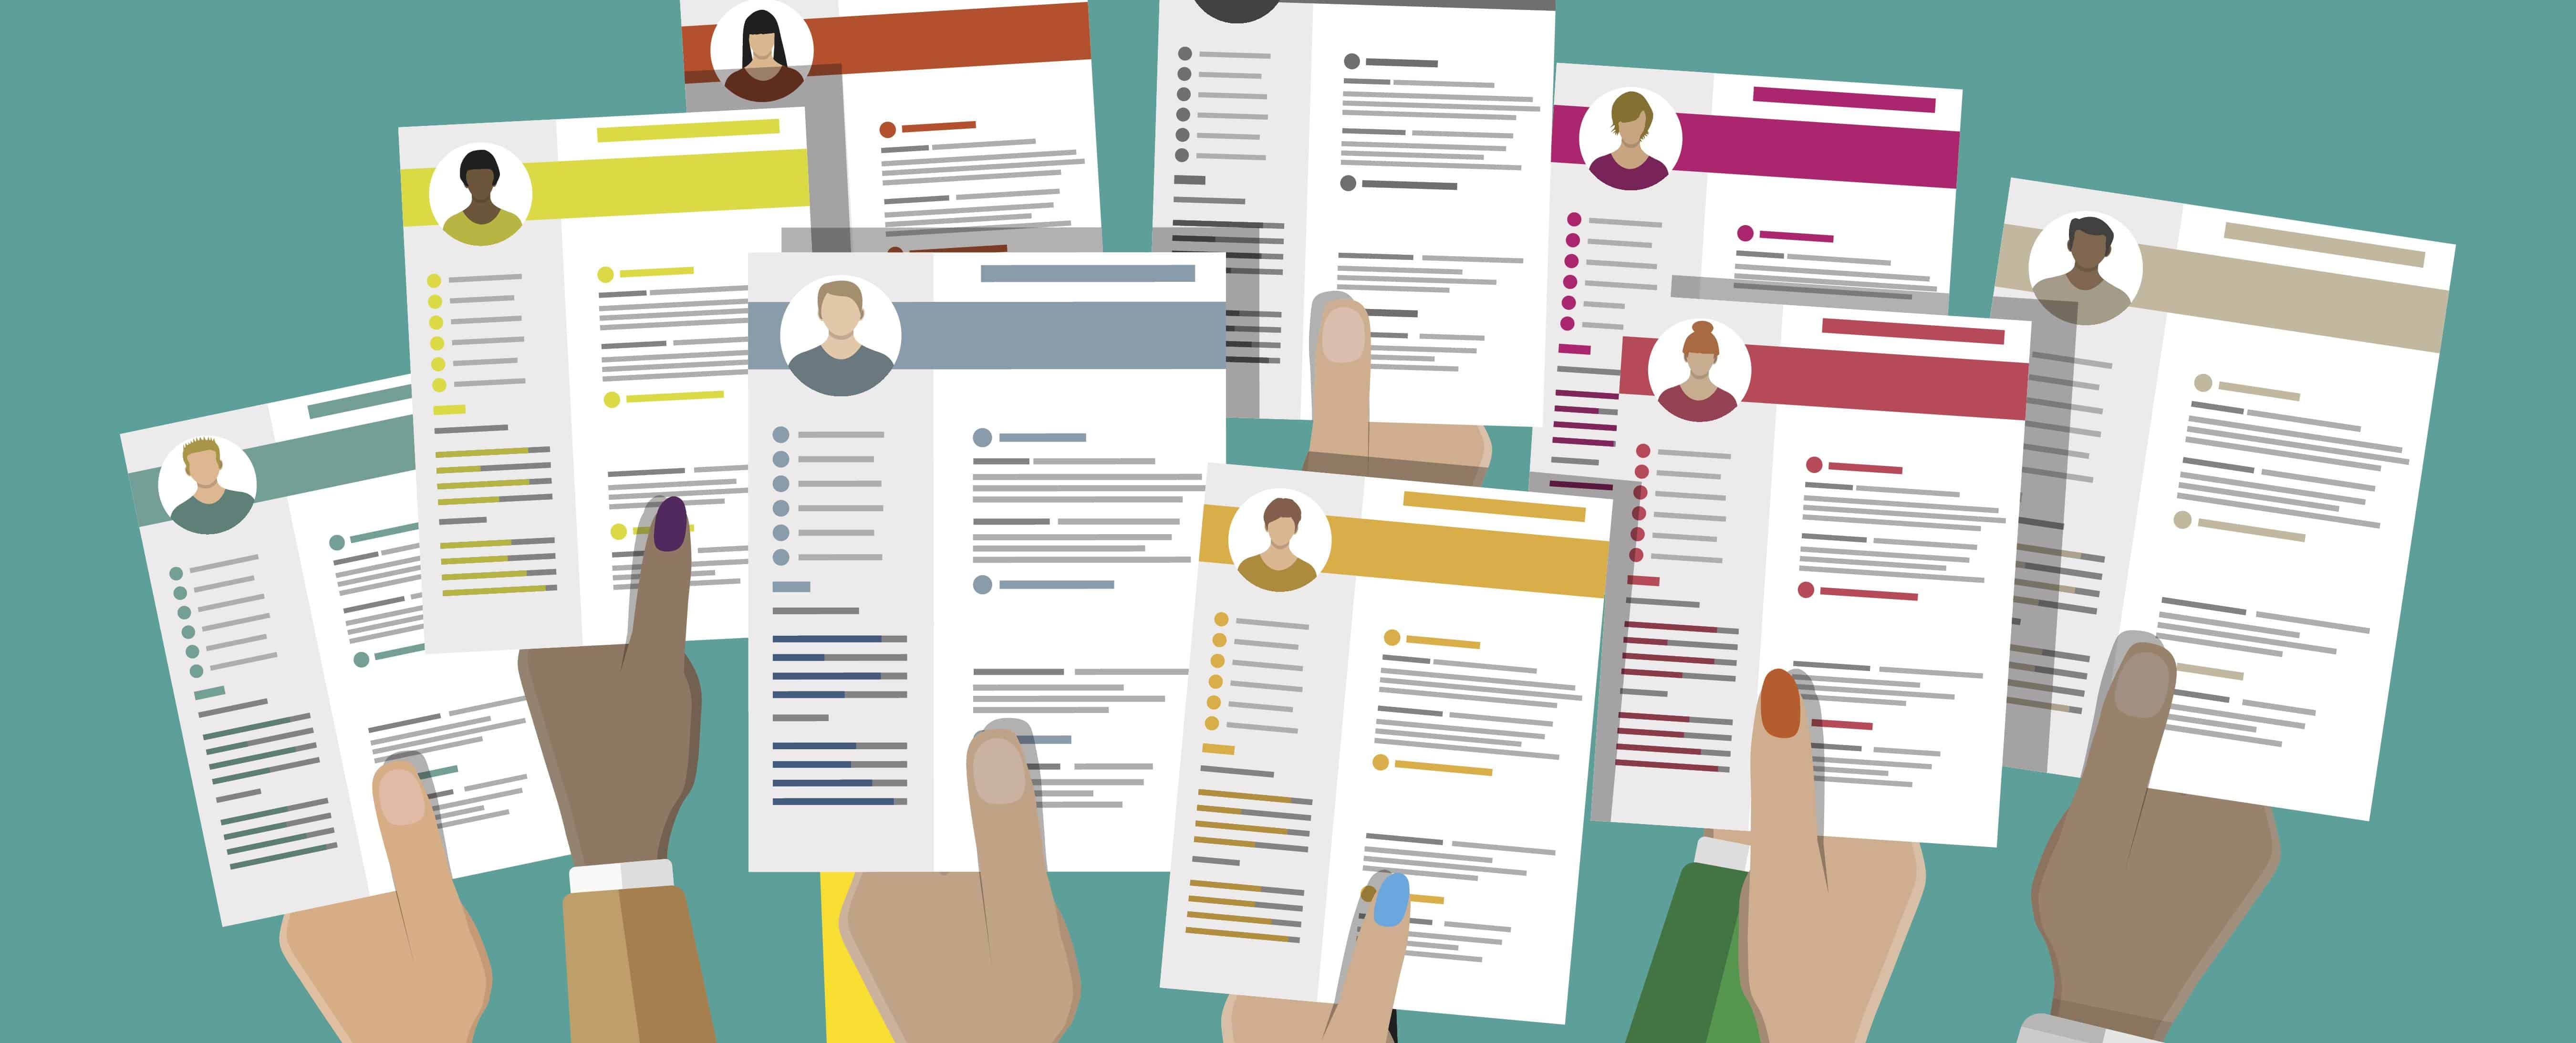 vector illustration of hands holding resumes